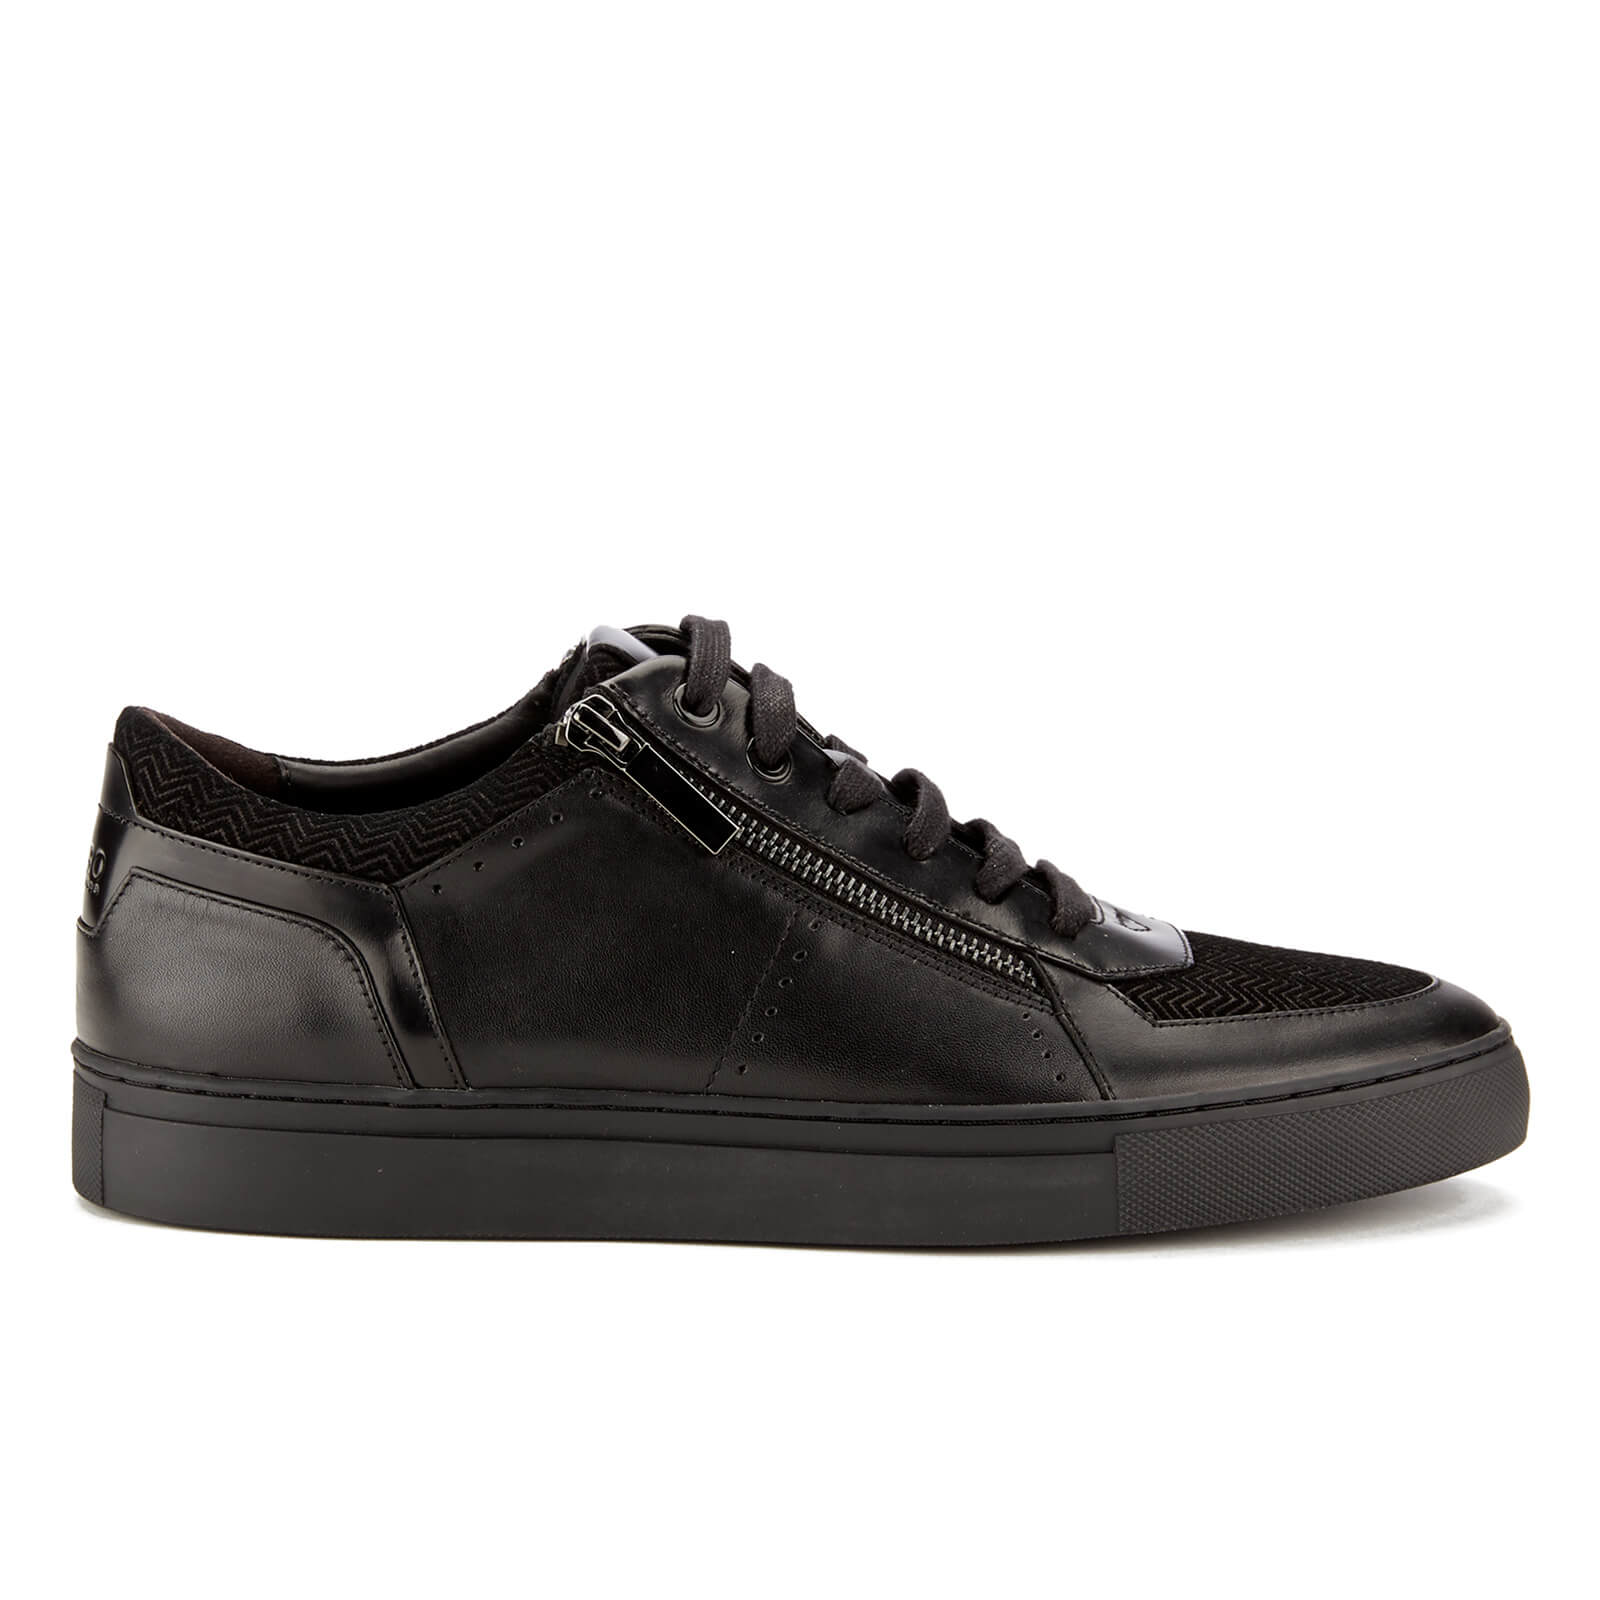 3a06cbb8b6 HUGO Men's Futurism Leather Low Top Trainers - Black | FREE UK ...